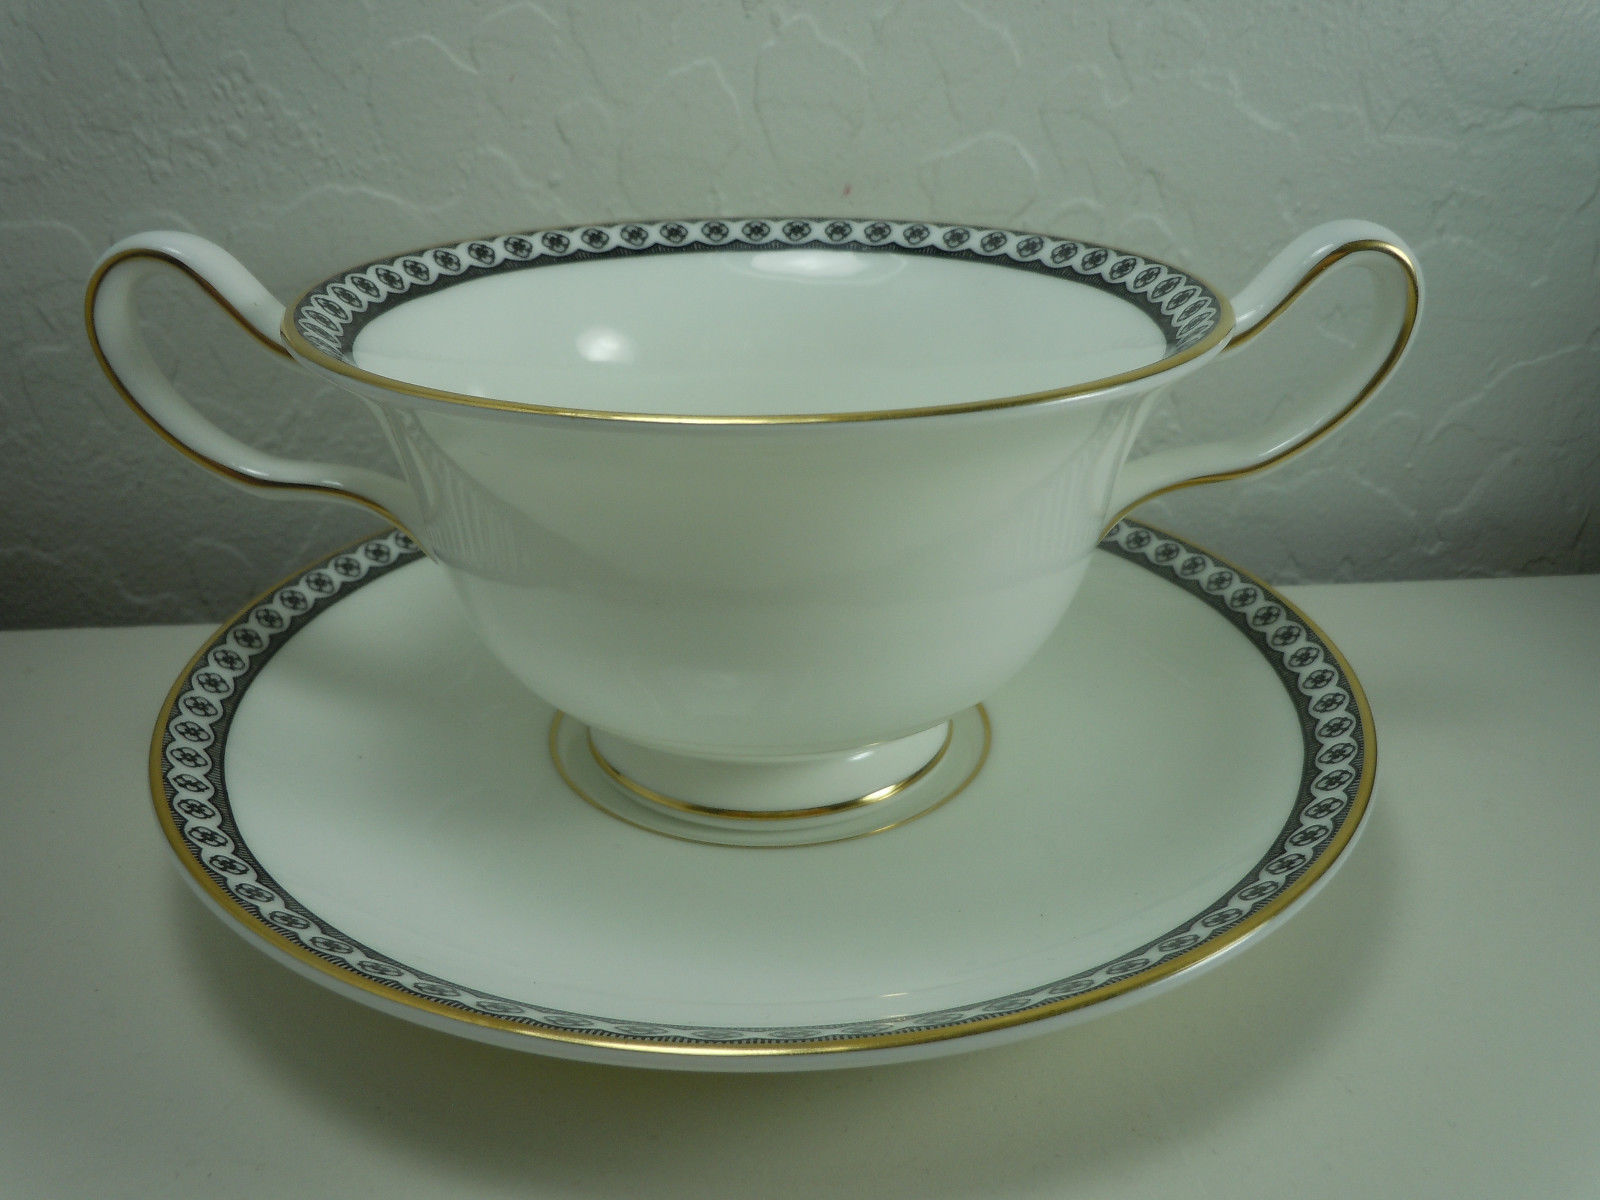 Wedgwood Ulander Black Cream Soup and Saucer Set